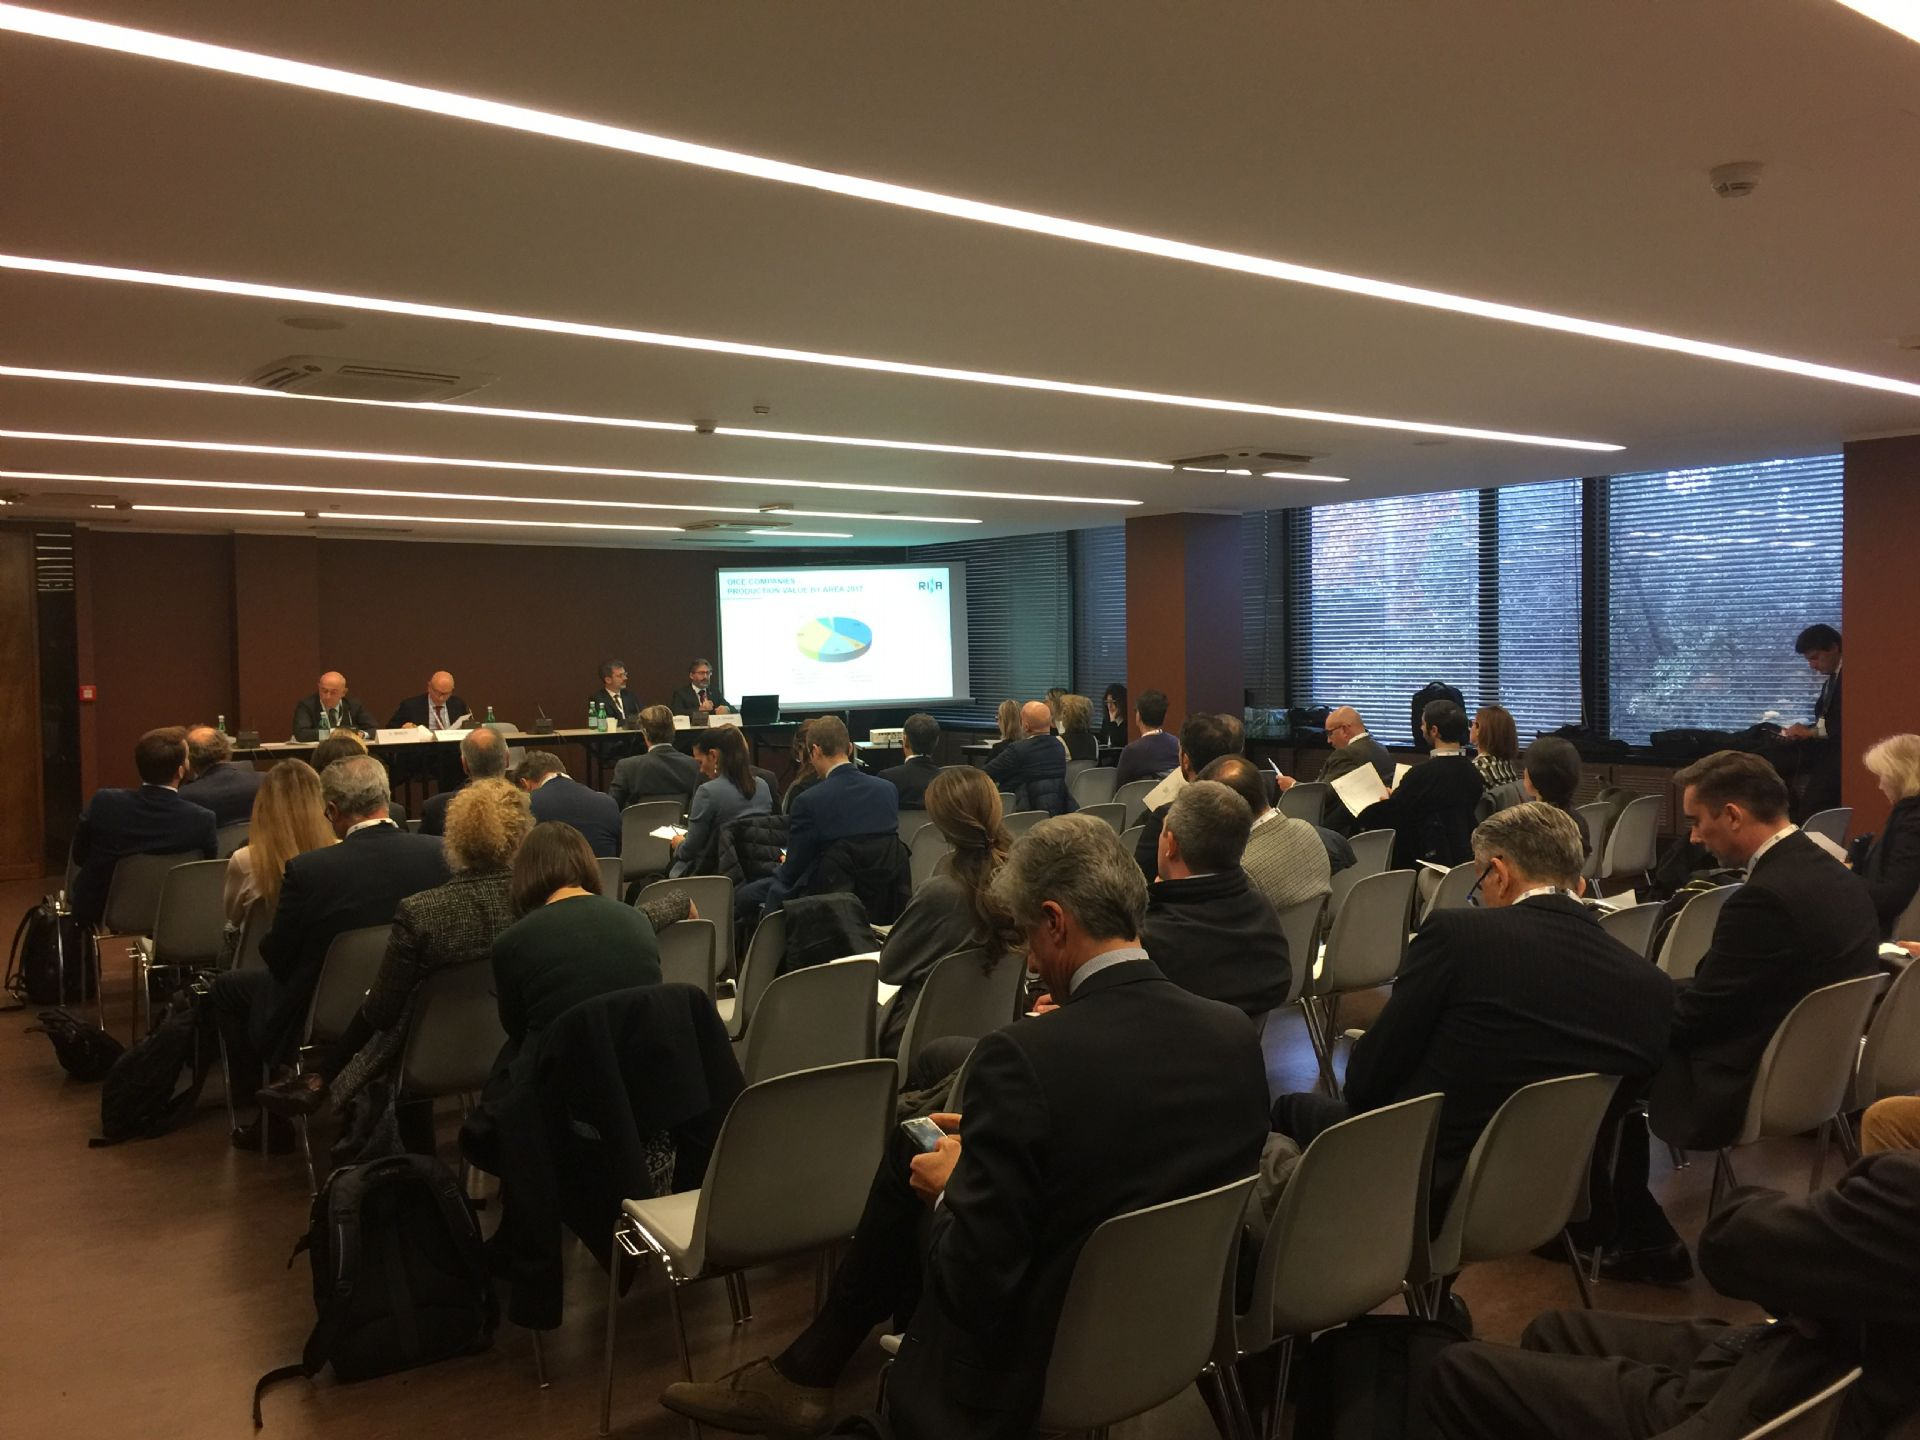 CONFERENCE AT CONFINDUSTRIA. ONE YEAR OF CETA FOR CANADA - EU RELATIONSHIPS: NUMBERS AND PERSPECTIVES, THE STRATEGIC AREAS OF THE AGREEMENT, THE ADVANTAGES FOR ITALIAN COMPANIES